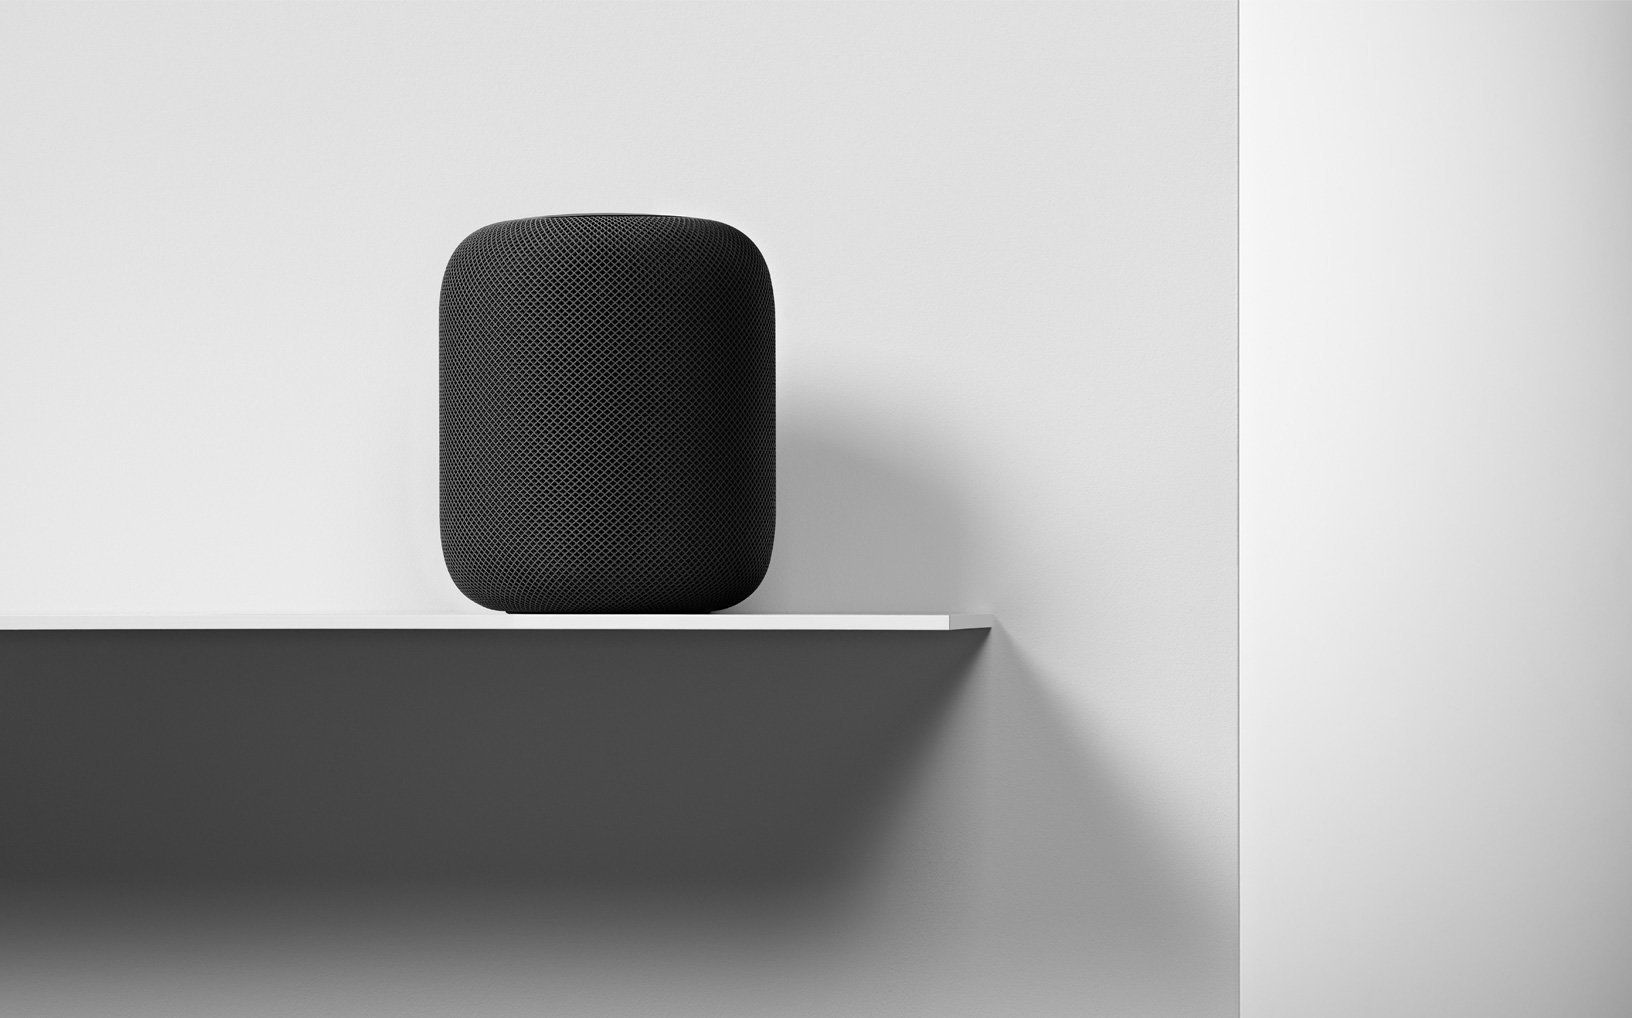 We Spent An Hour With Apple's New HomePod